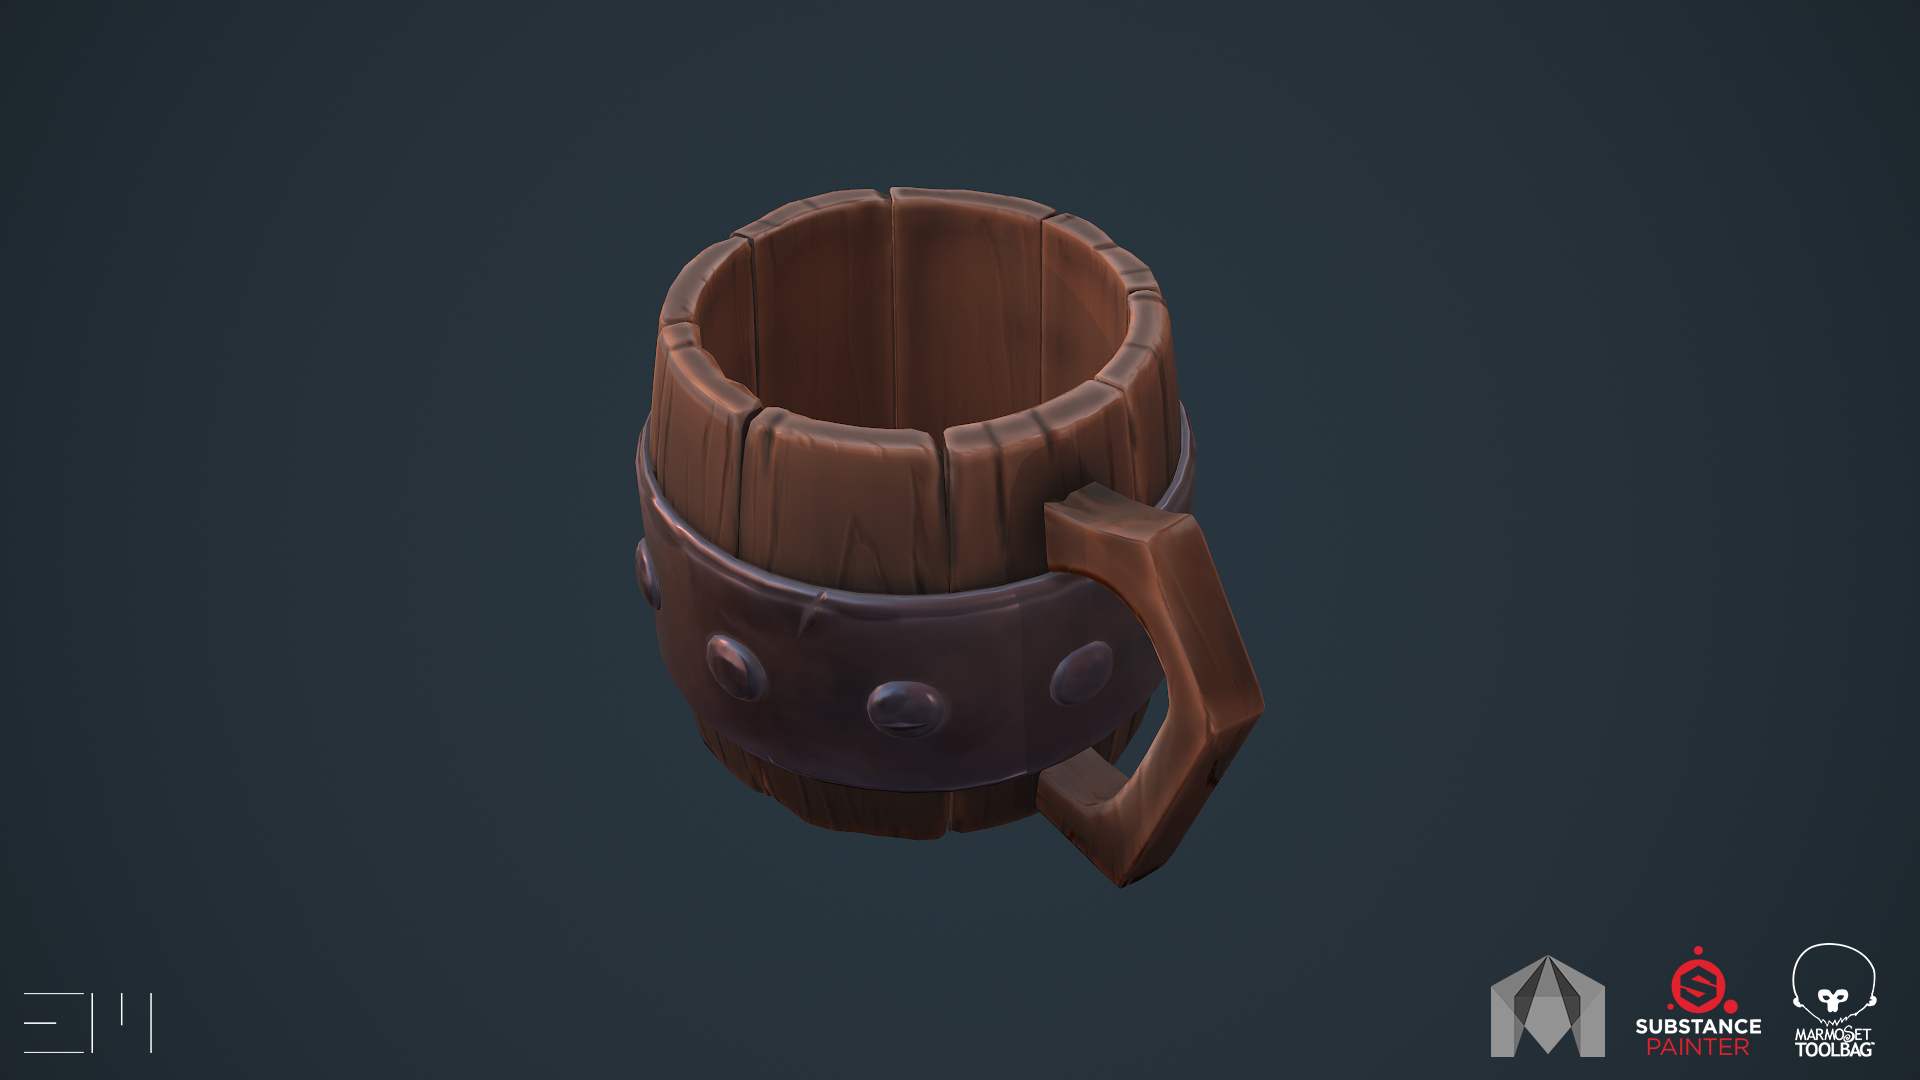 Cup_02.png